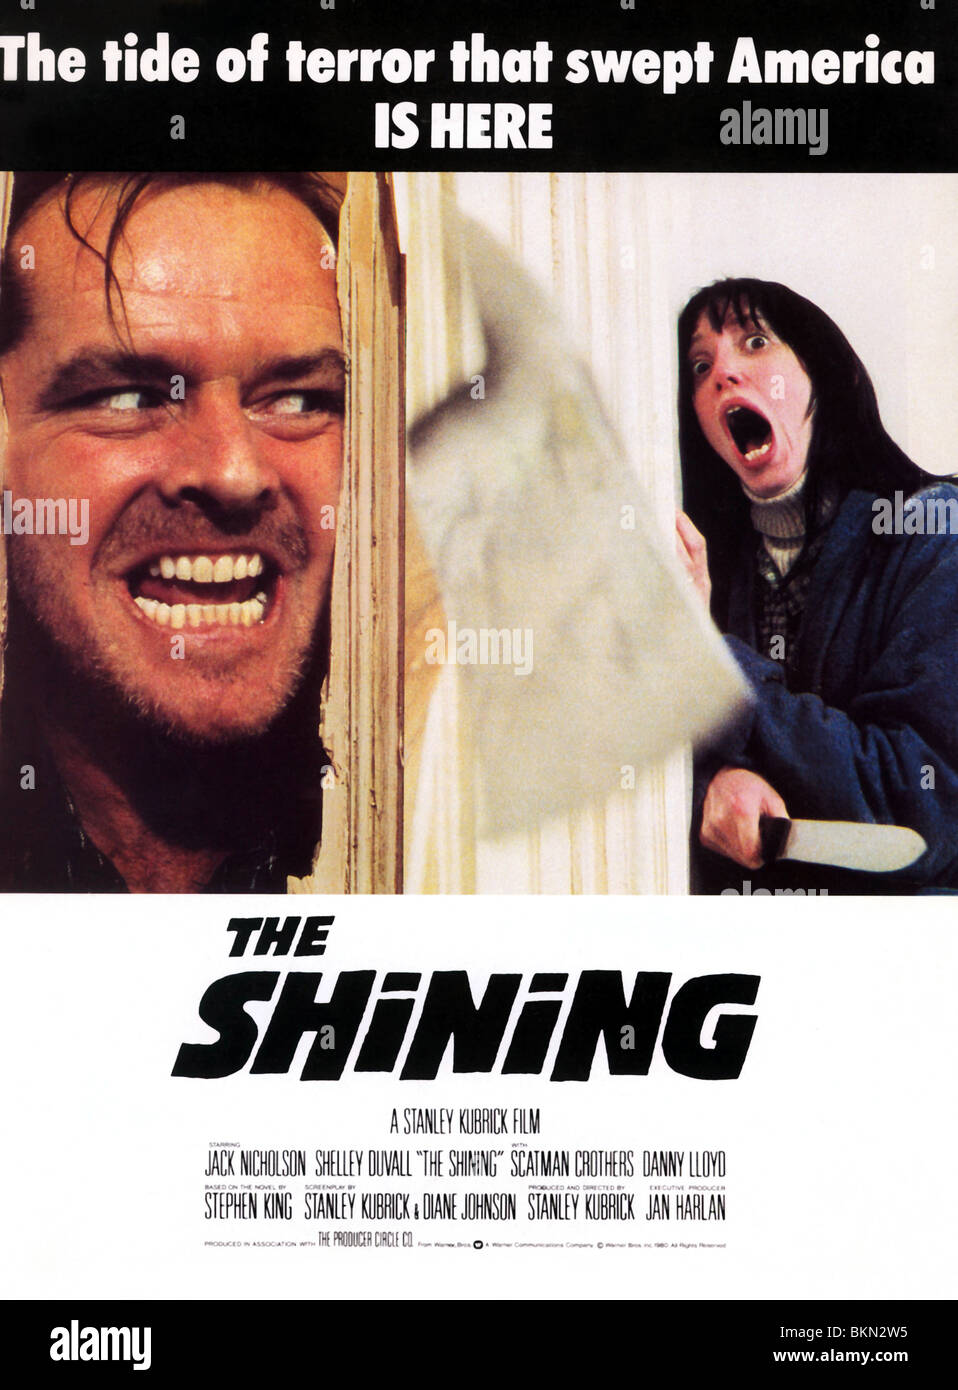 THE SHINING -1980 POSTER - Stock Image